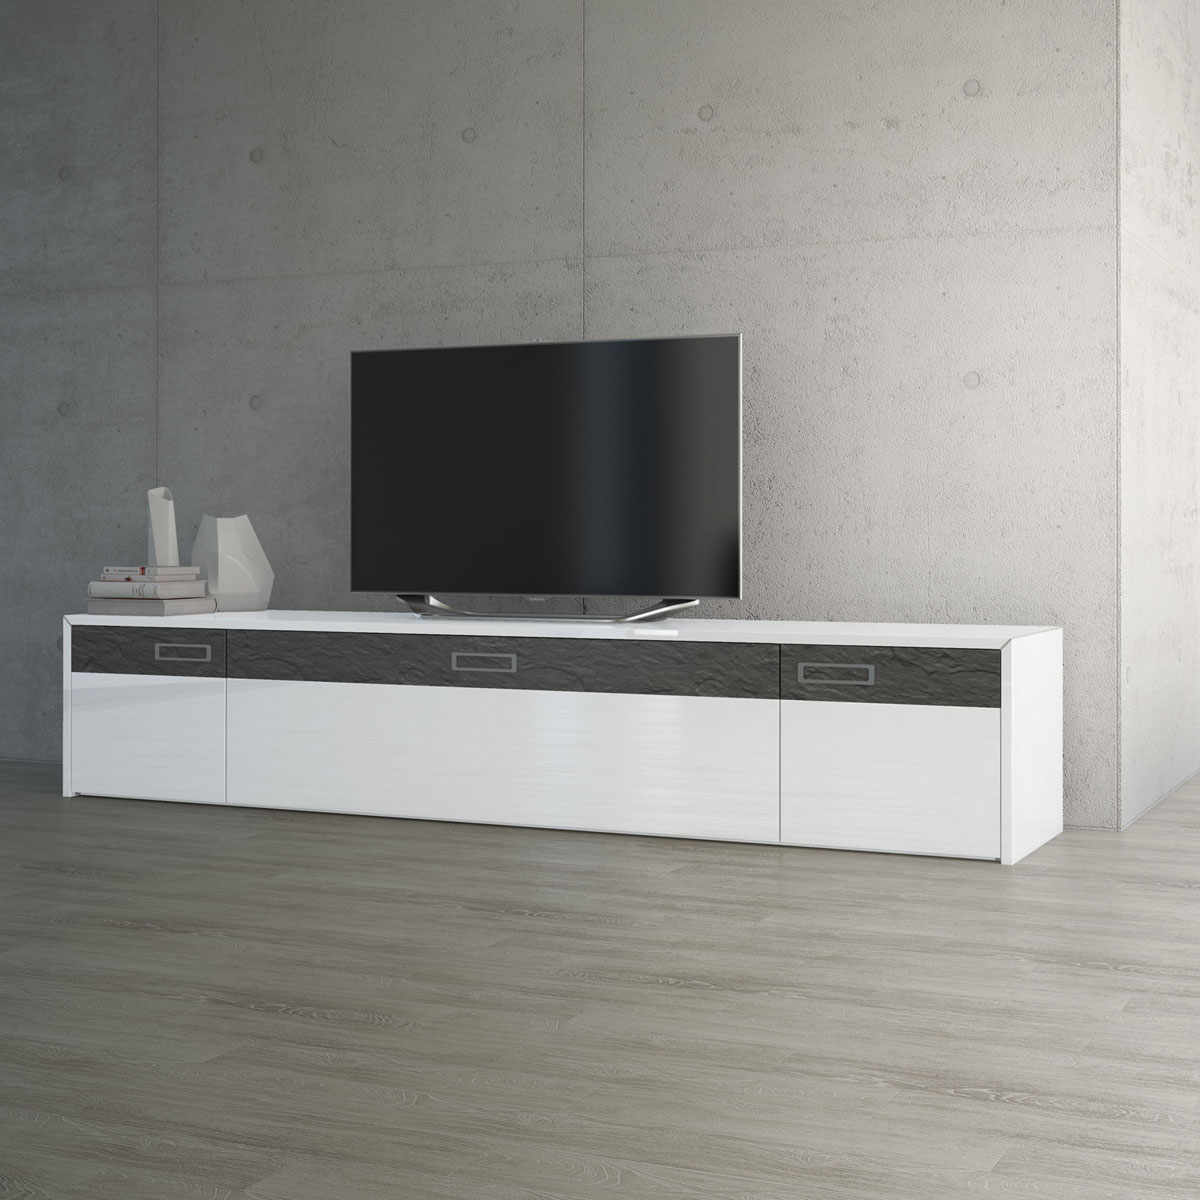 sideboard fernsehmbel excellent best tvbank wei with sideboard fernsehmbel beautiful sideboard. Black Bedroom Furniture Sets. Home Design Ideas